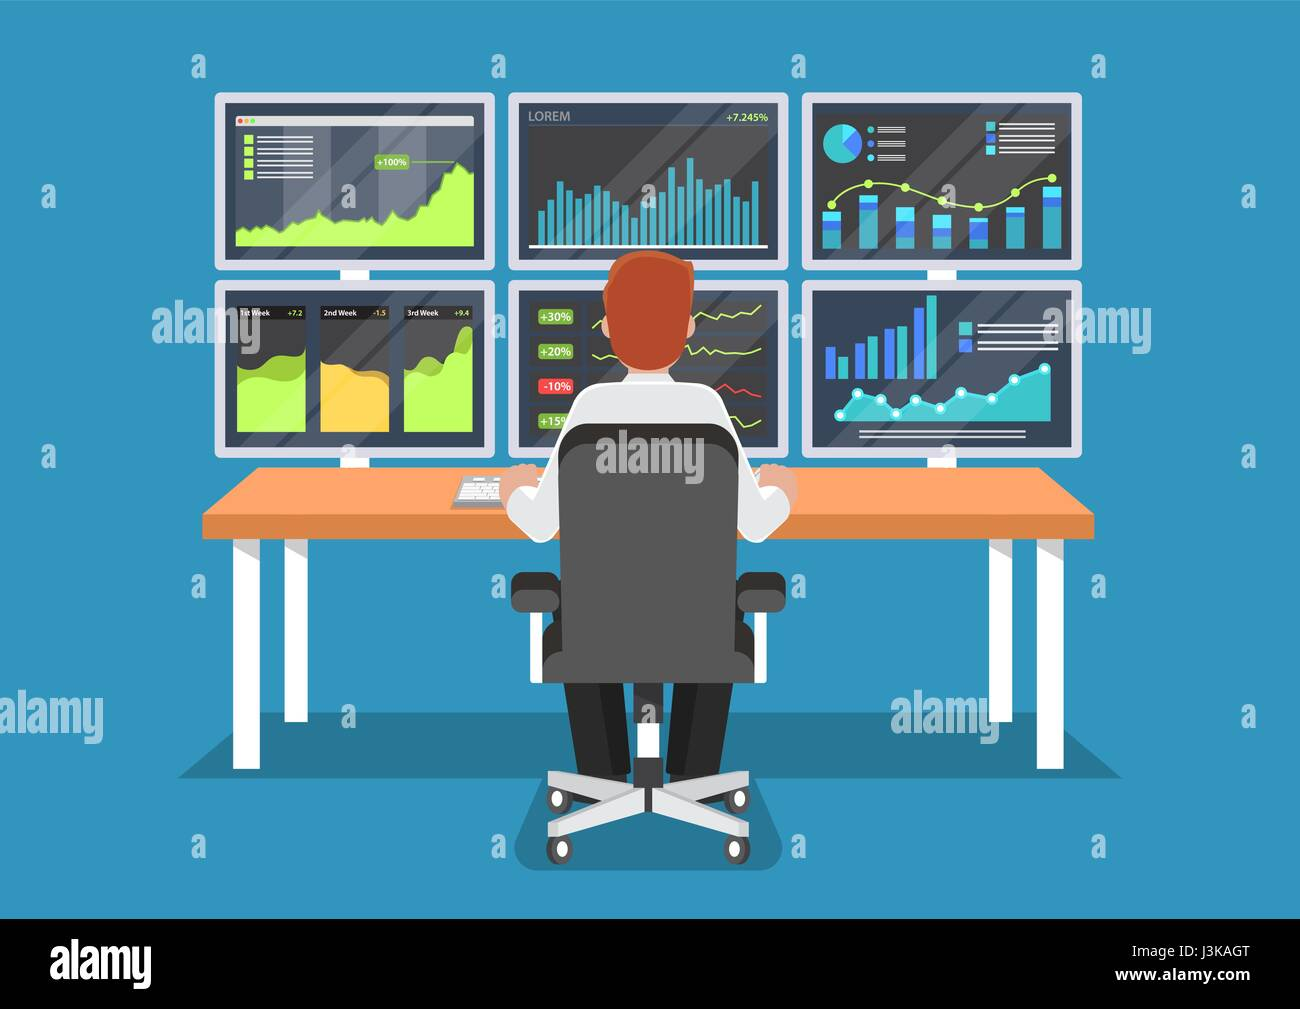 Learn more about algorithmic trading in forex markets, which automates certain processes and reduces the hours needed to conduct transactions.